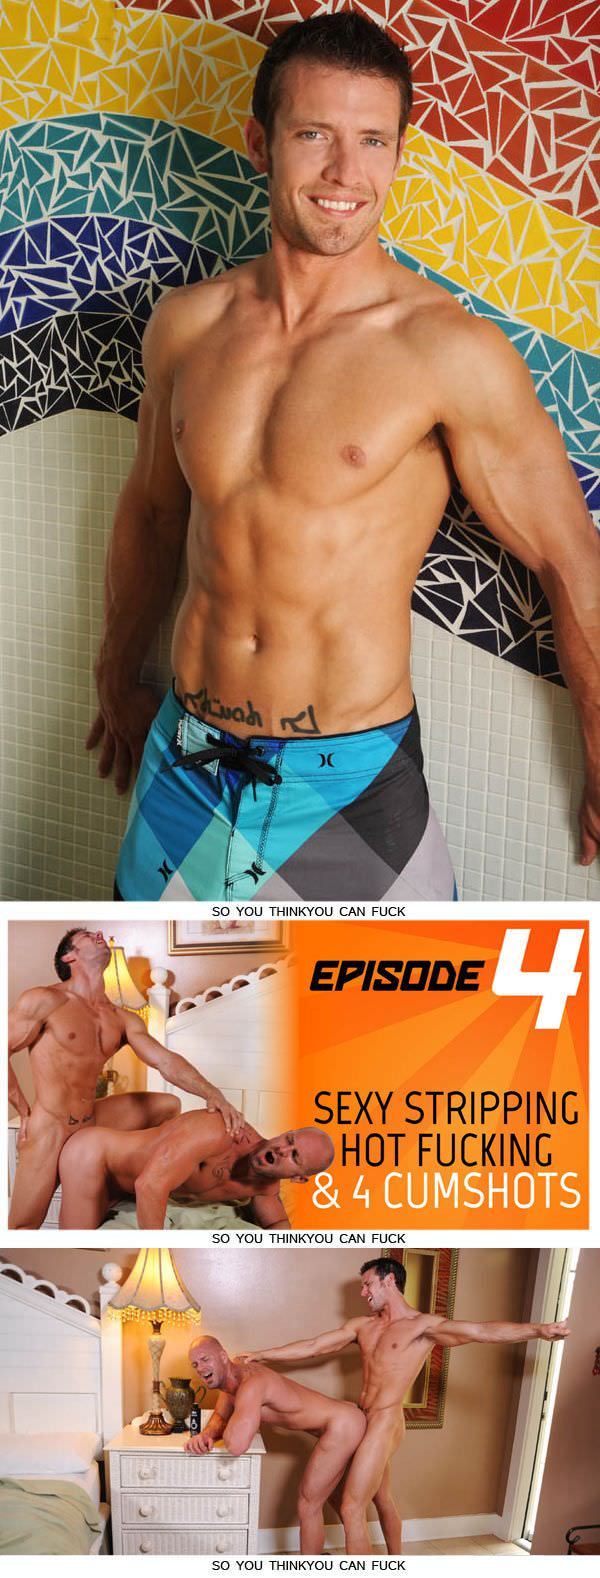 DominicFord SYTYCF II Episode 4 Sexy Stripping, Hot Fucking, 4 Cumshots Kevin Crows Mitch Vaughn